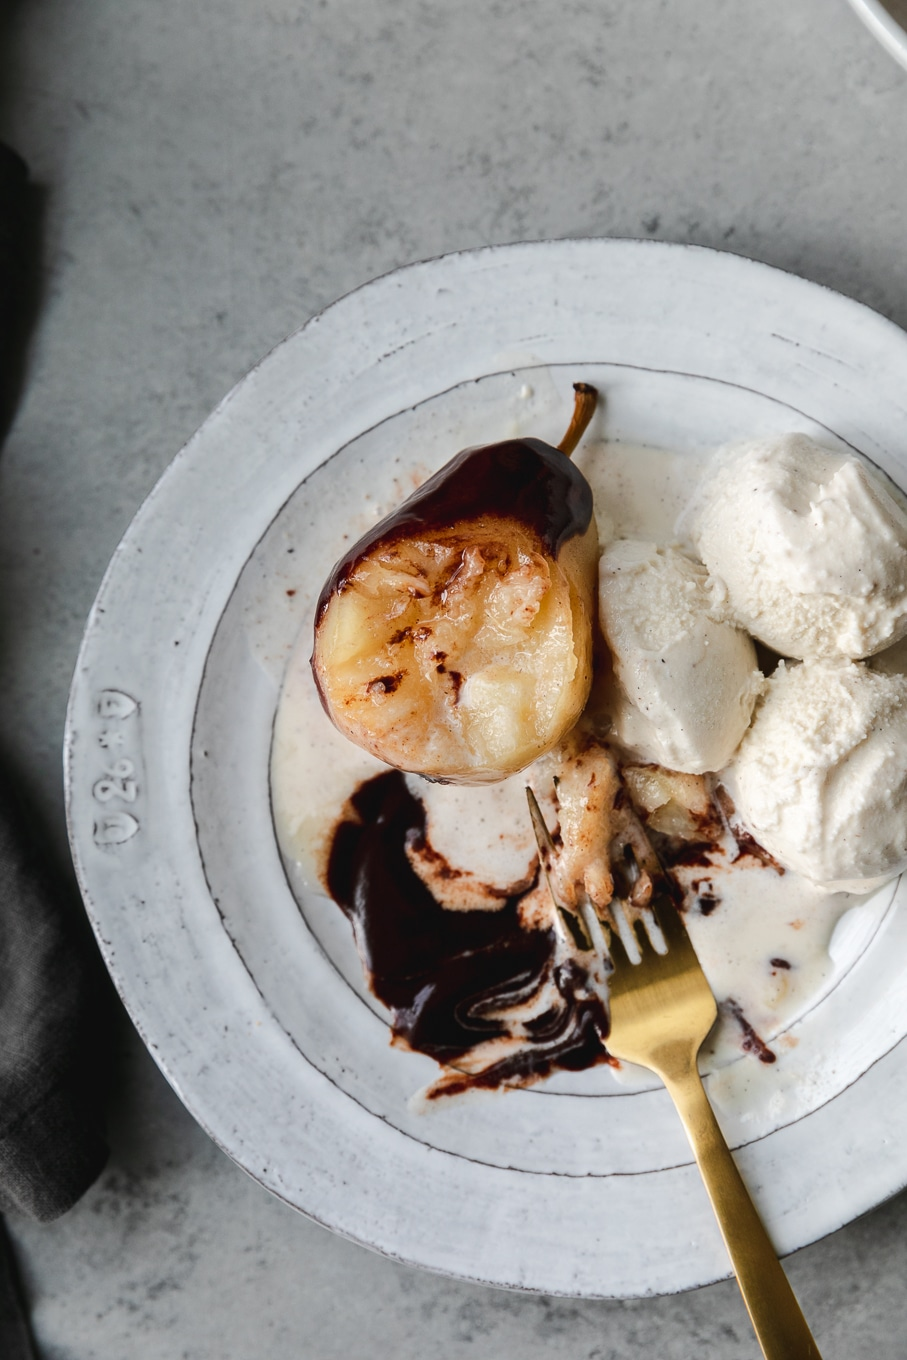 Overhead shot of a poached pear being eaten with chocolate fudge sauce and ice cream on a white plate with a gold fork